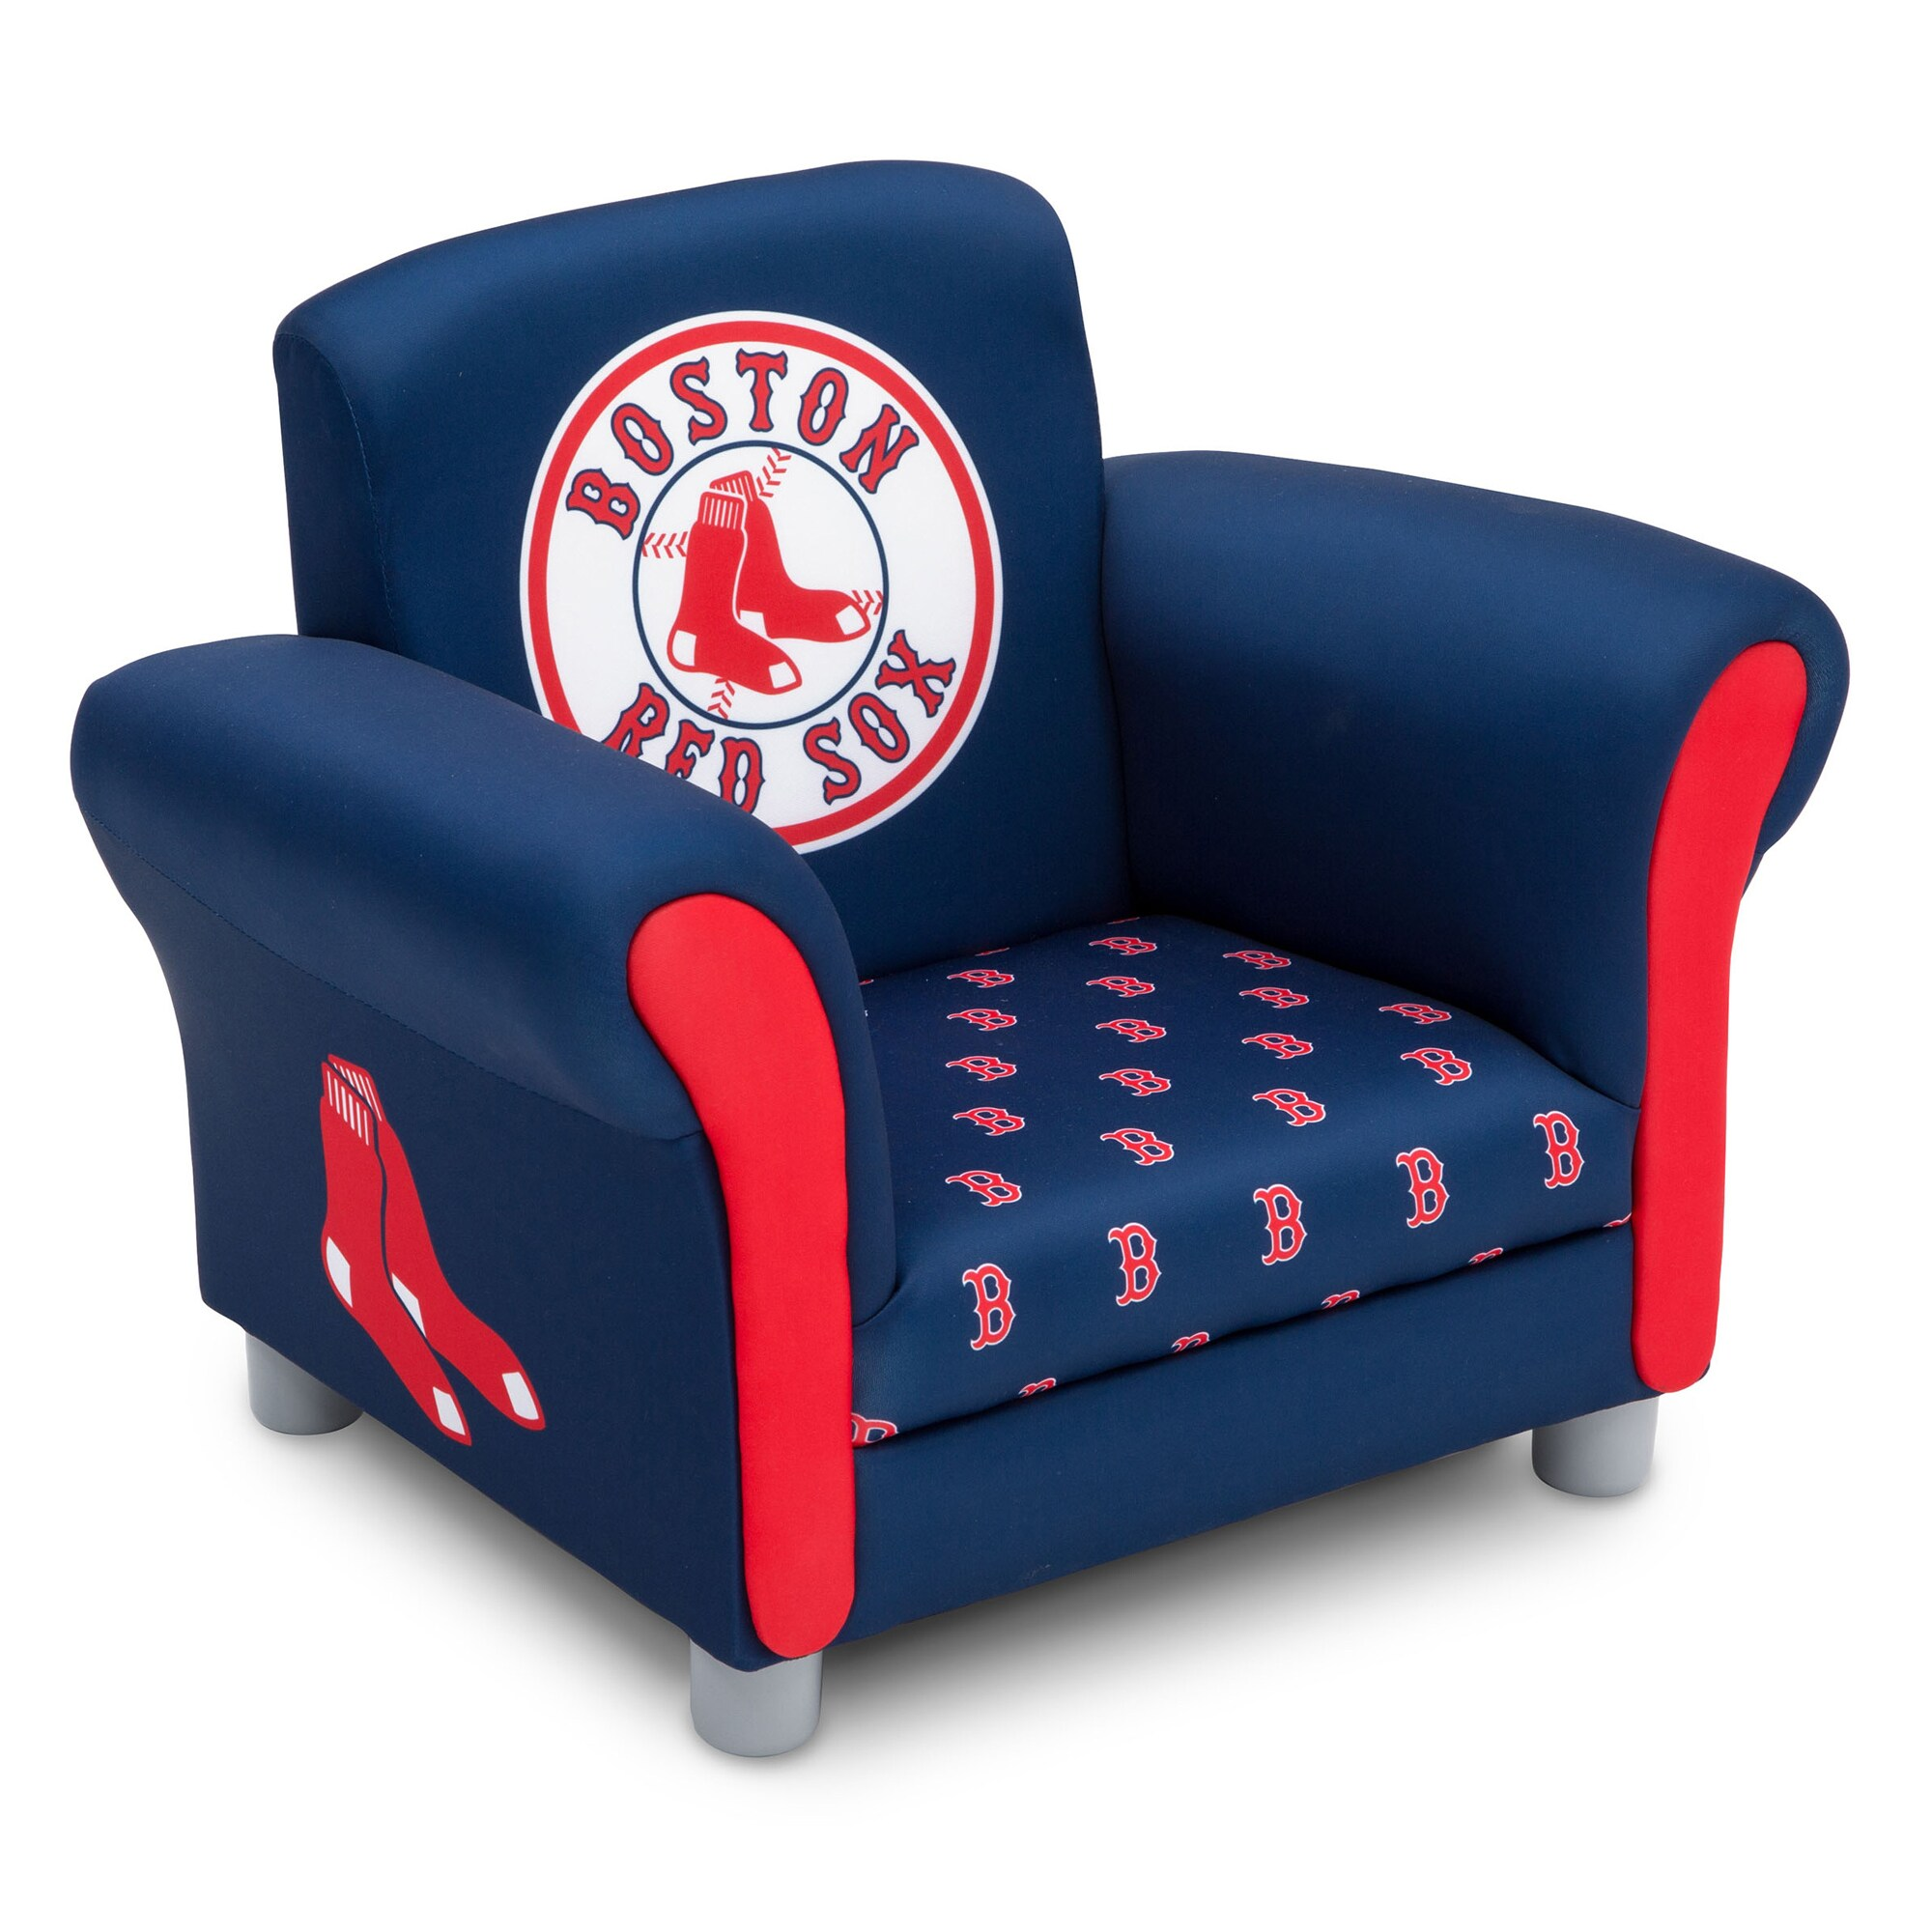 "Boston Red Sox Youth 23.5"" x 17.5"" x 18.5"" Upholstered Chair - Red"